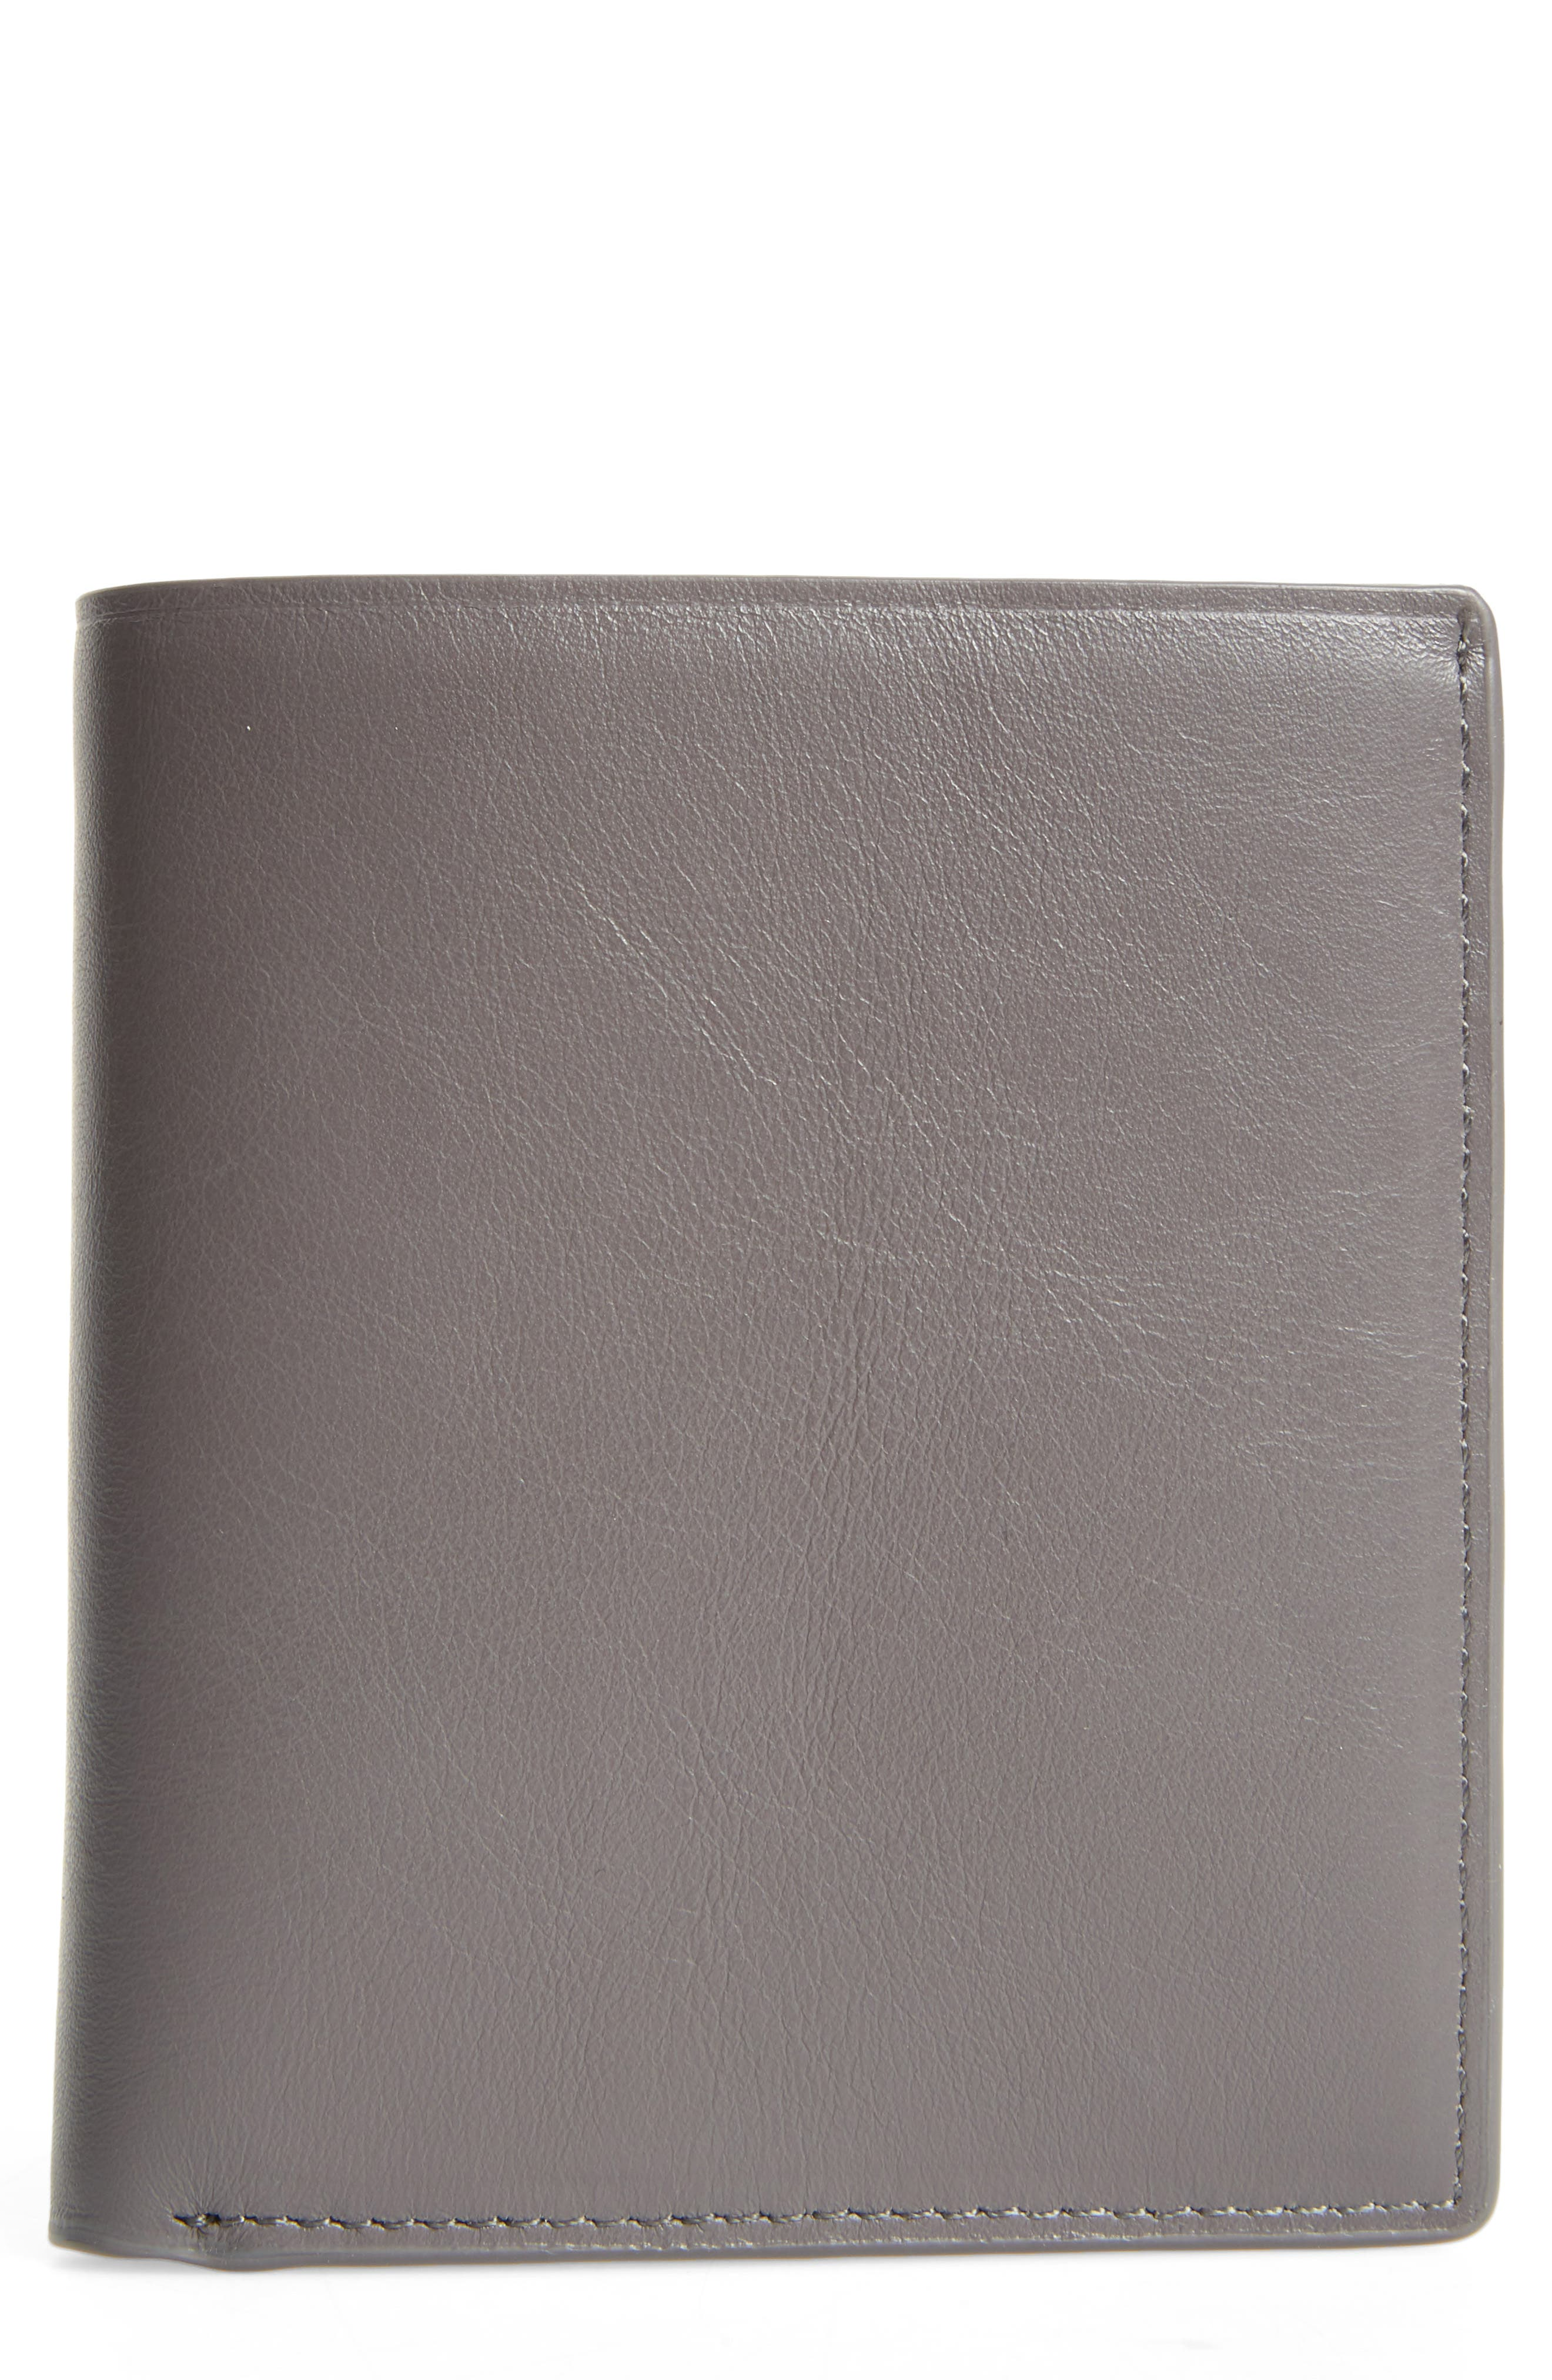 Main Image - WANT LES ESSENTIELS Bradley Bifold Leather Wallet